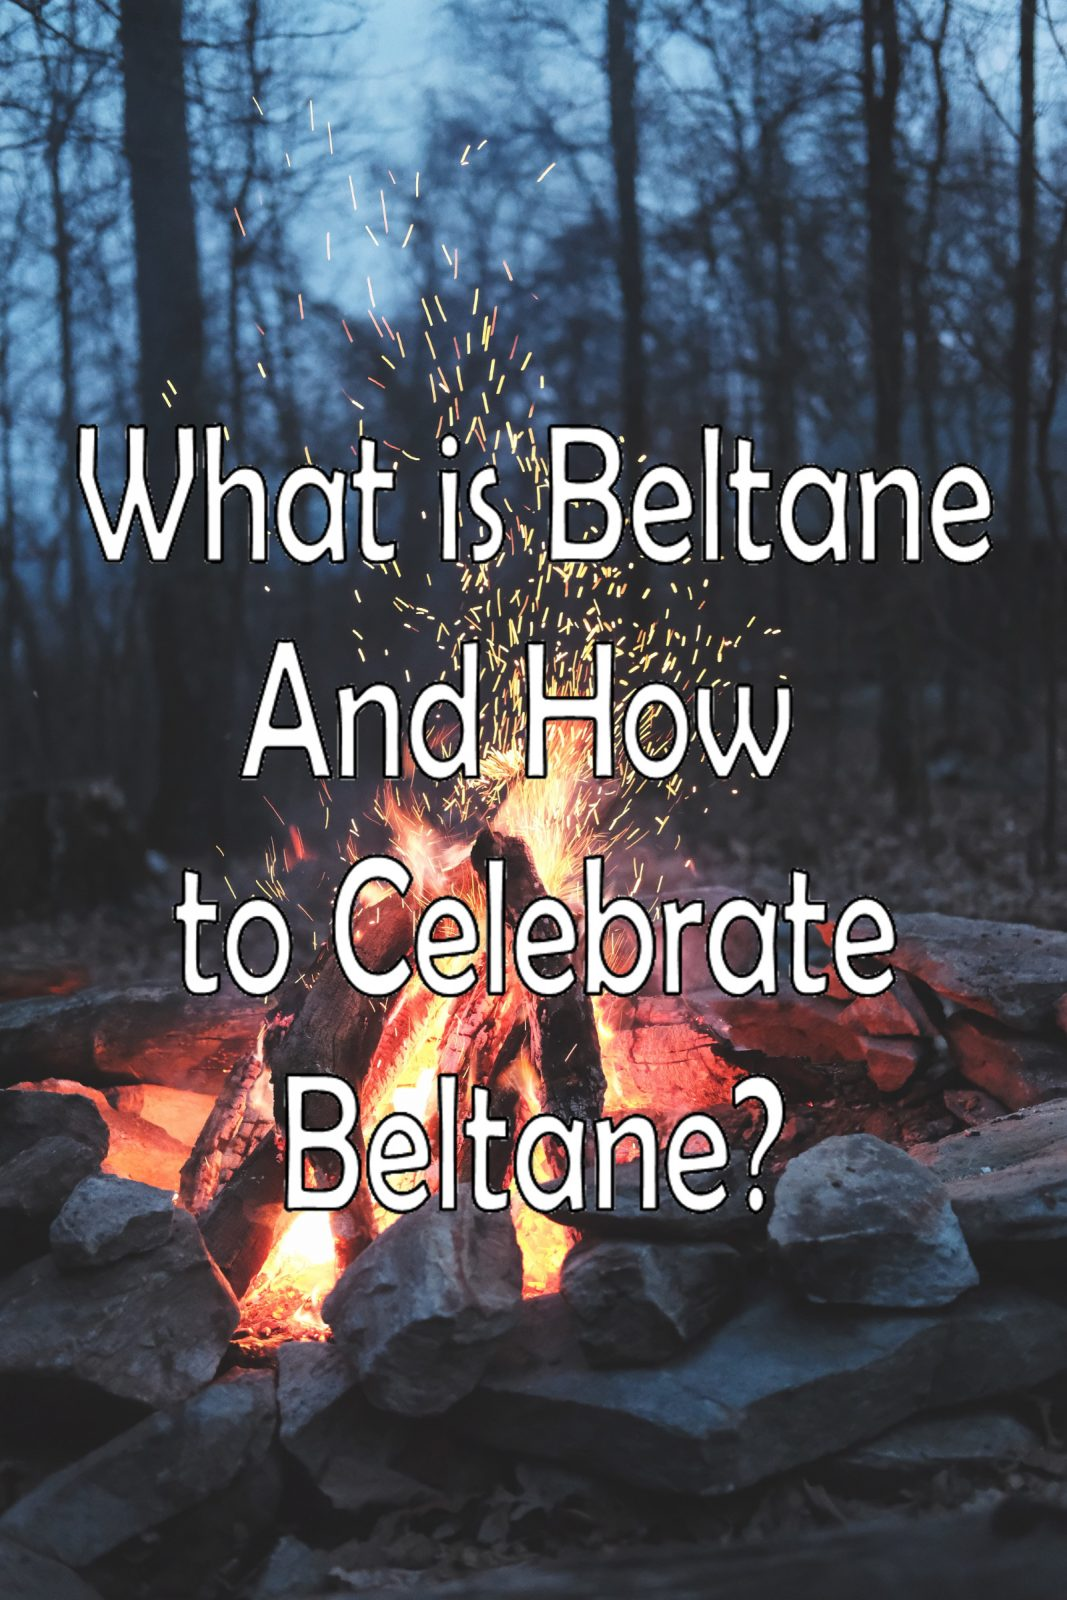 About Beltane 5th sabbat